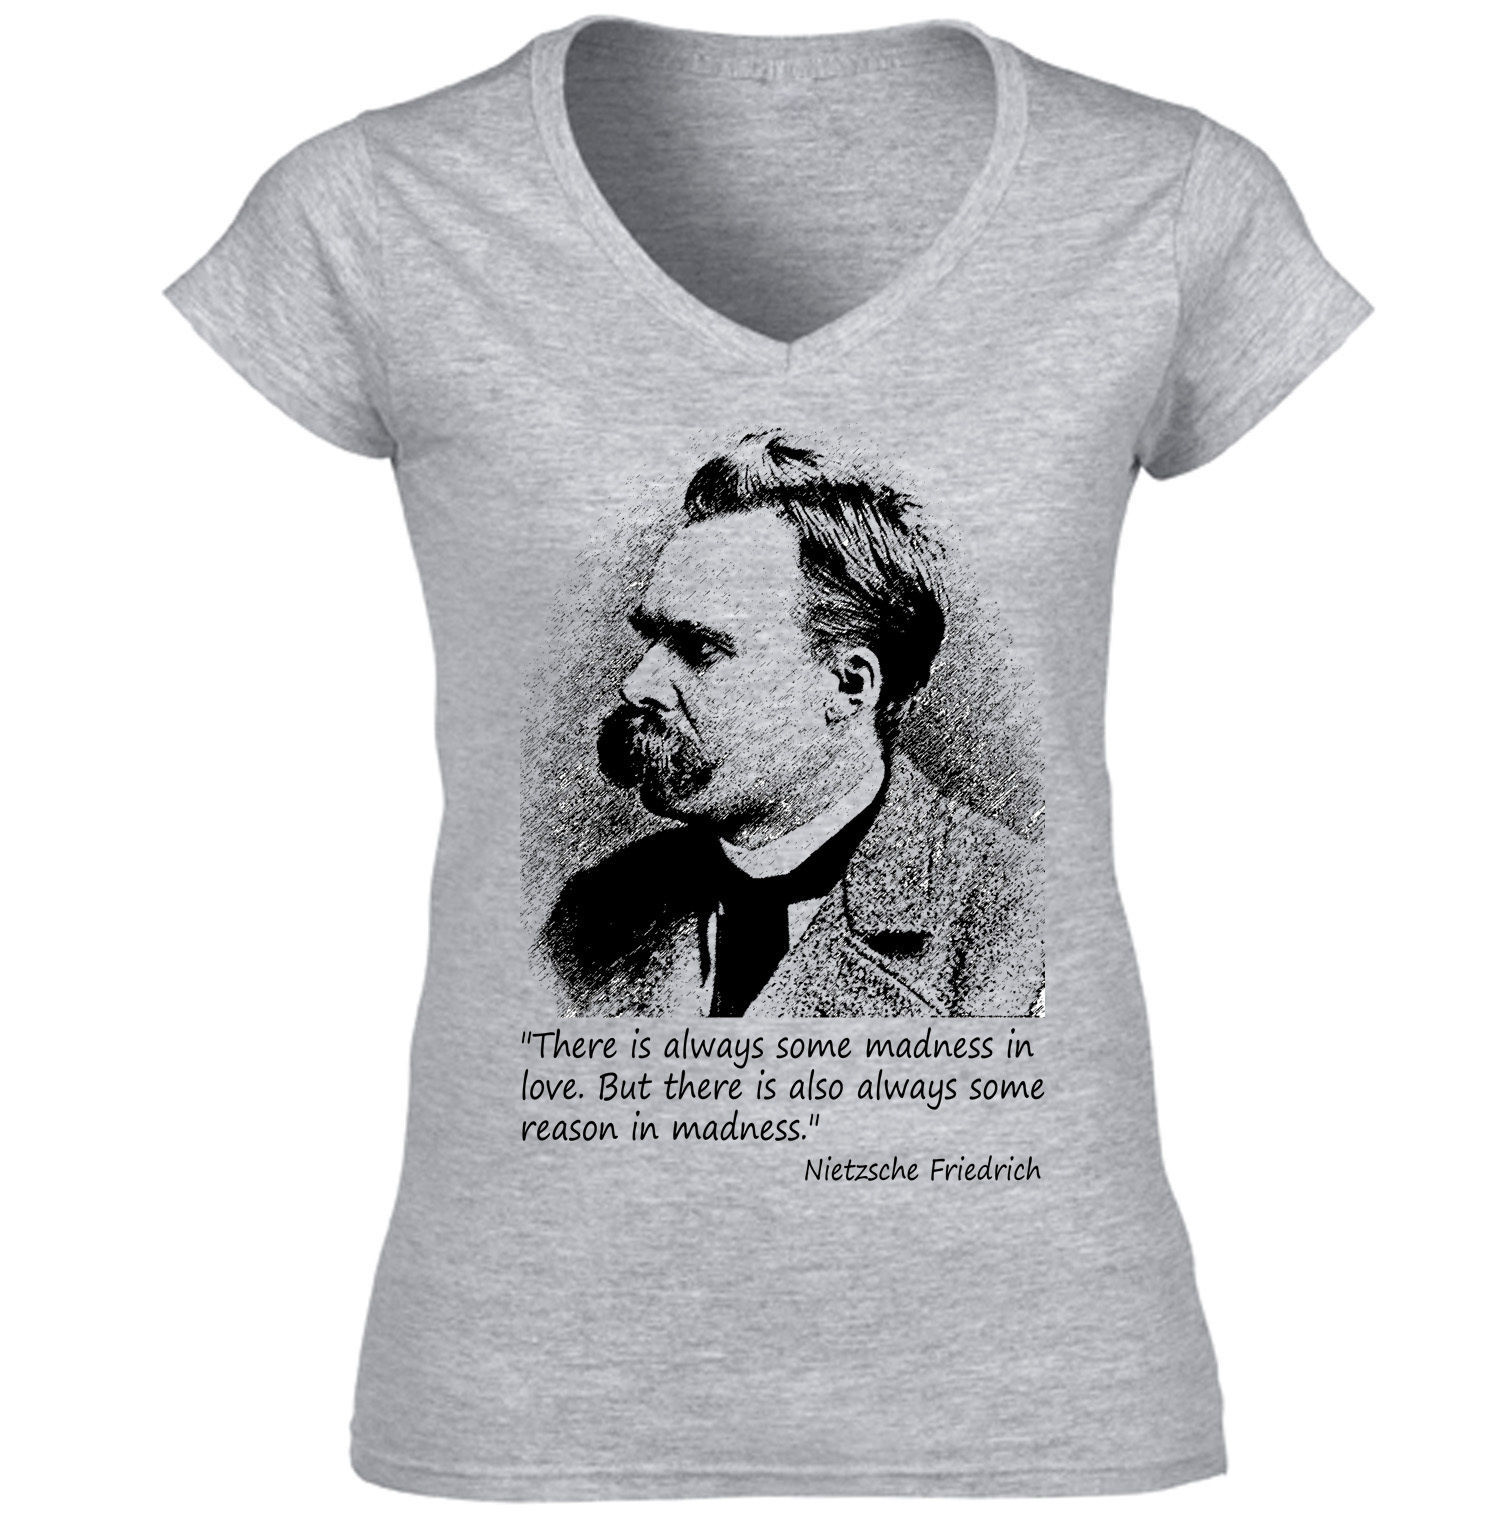 Primary image for Friedrich Nietzsche - NEW AMAZING GRAPHIC GREY T-SHIRT - S-M-L-XL-XXL